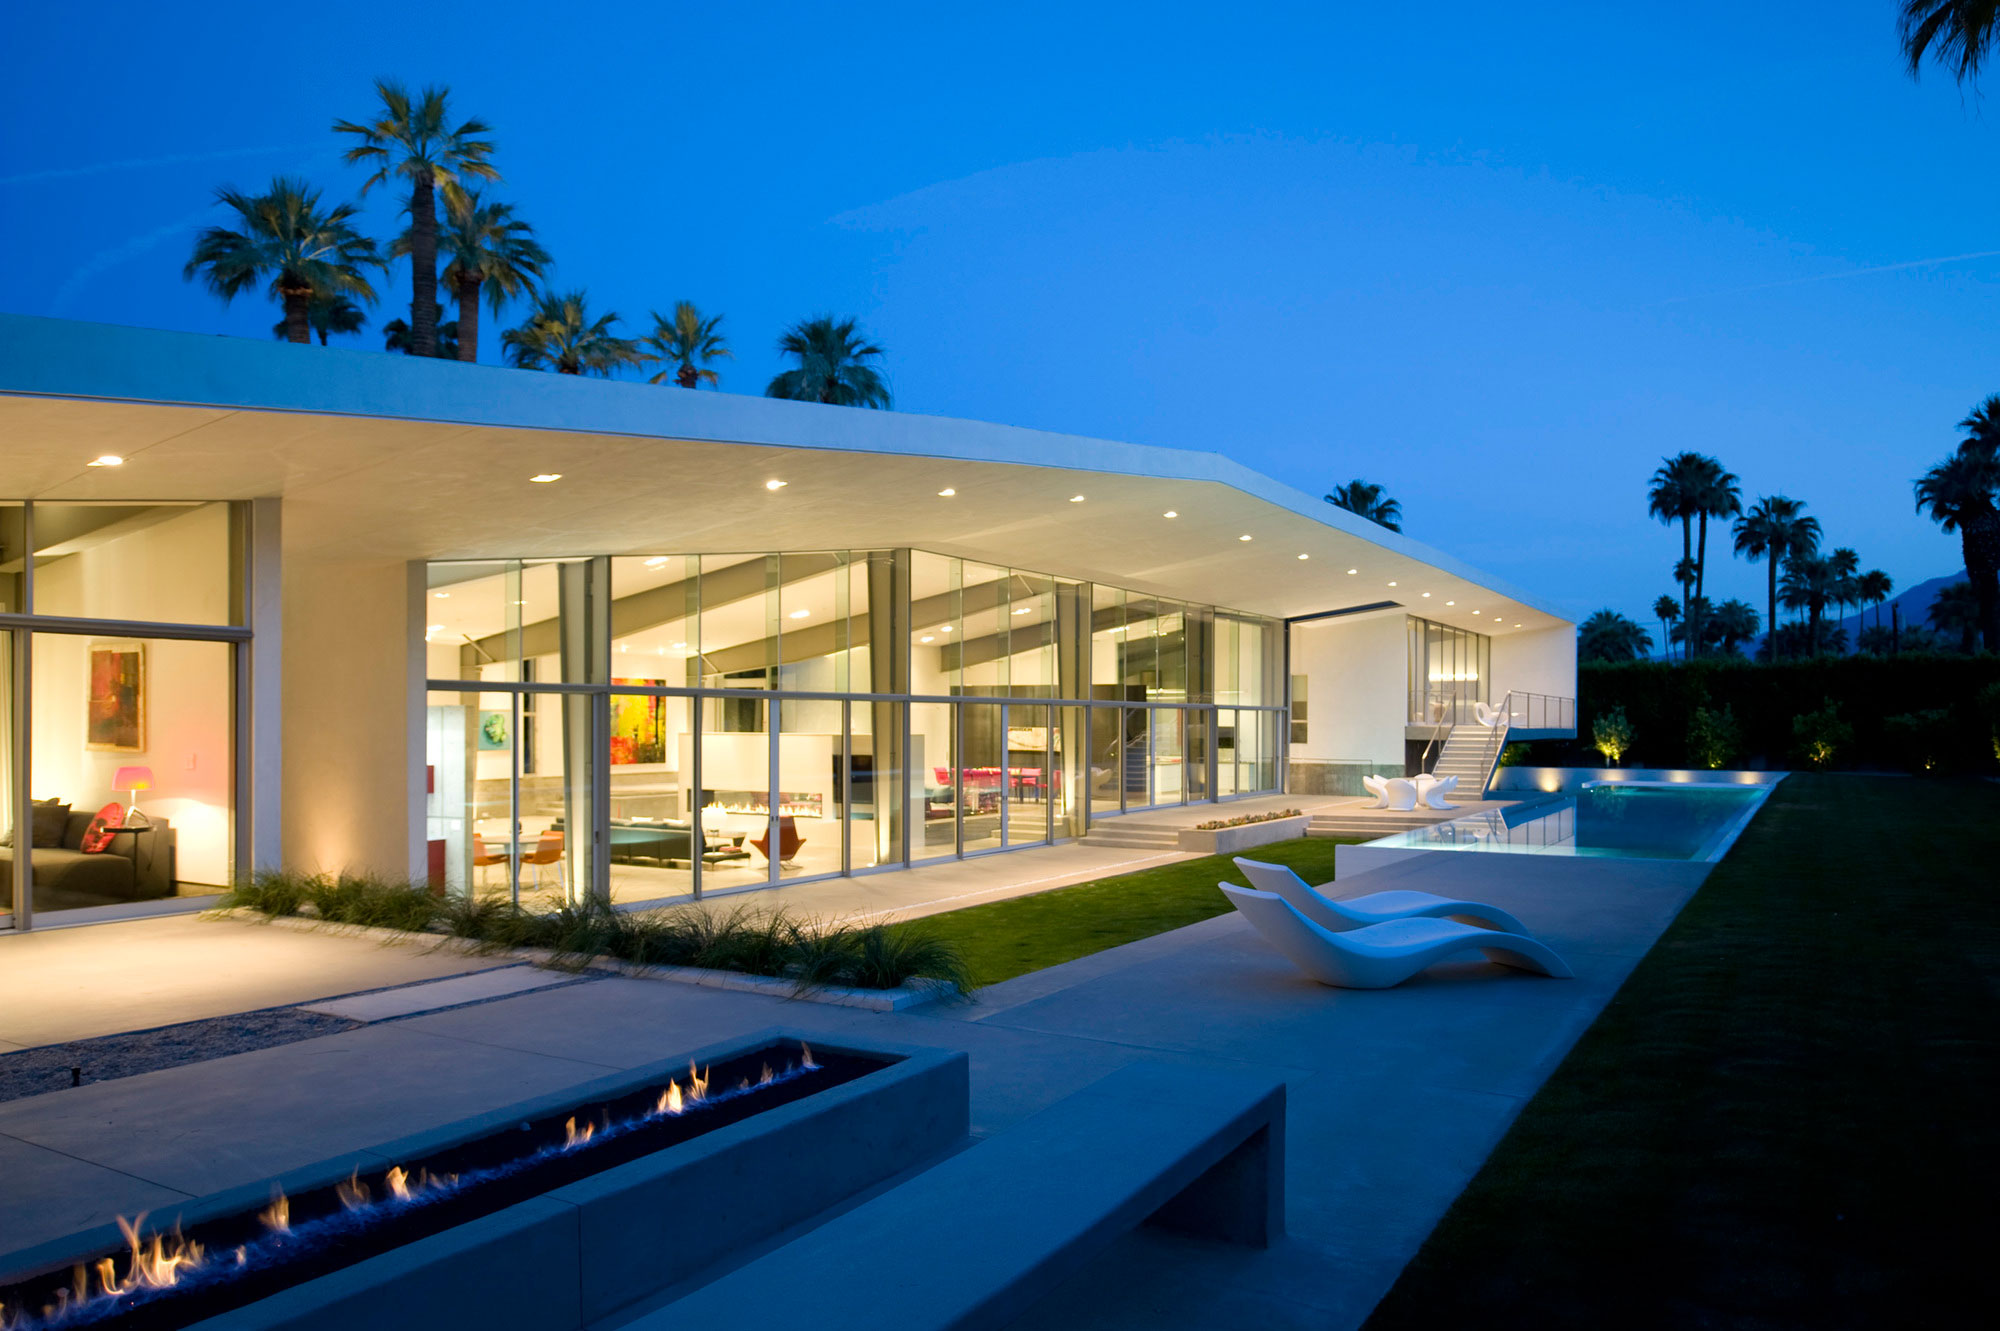 A Luxurious and Elegant Private Residence in Palm Springs, California